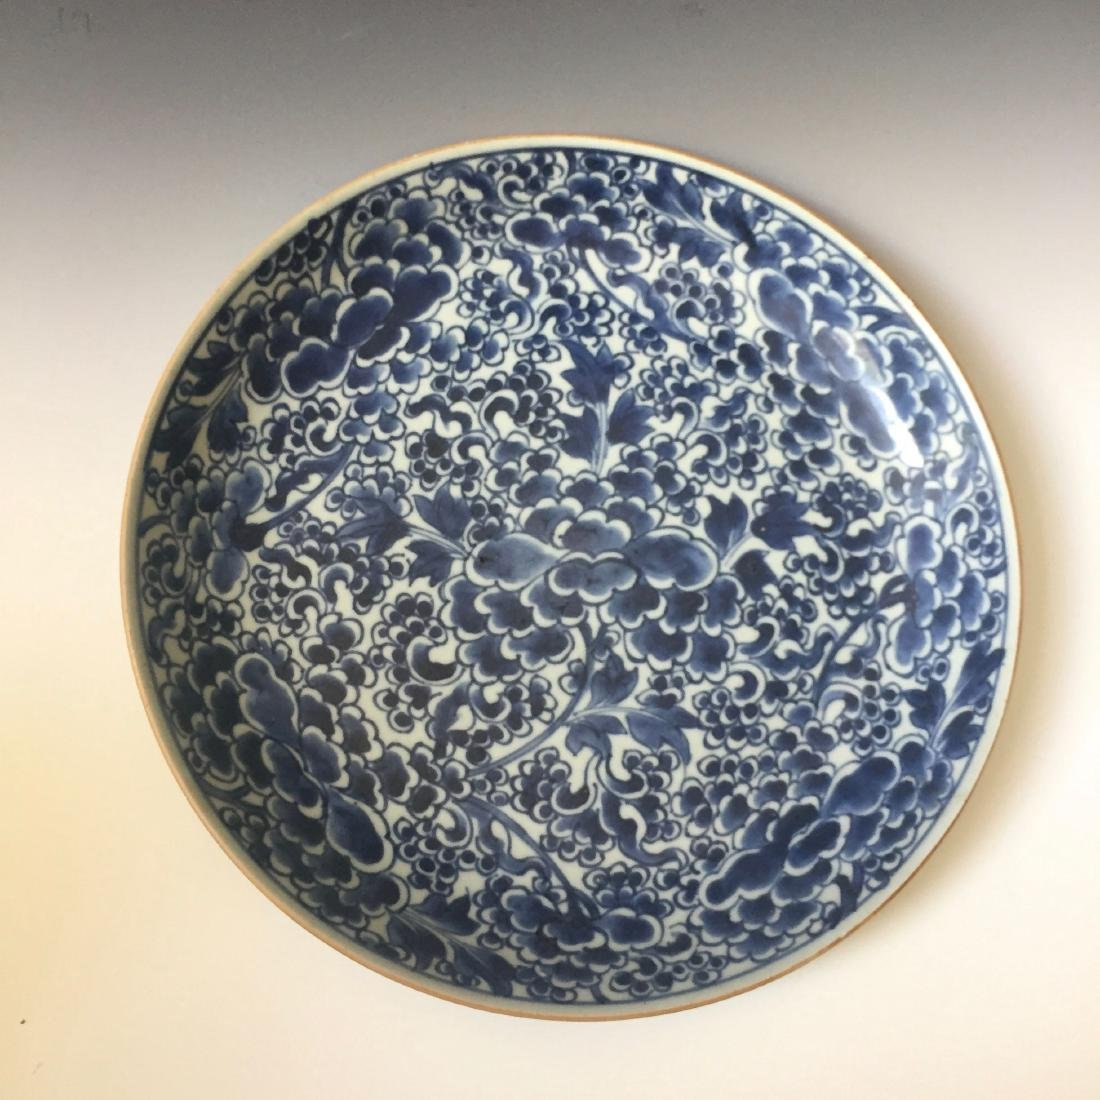 A CHINESE ANTIQUE BLUE AND WHITE PORCELAIN DISH,18C.